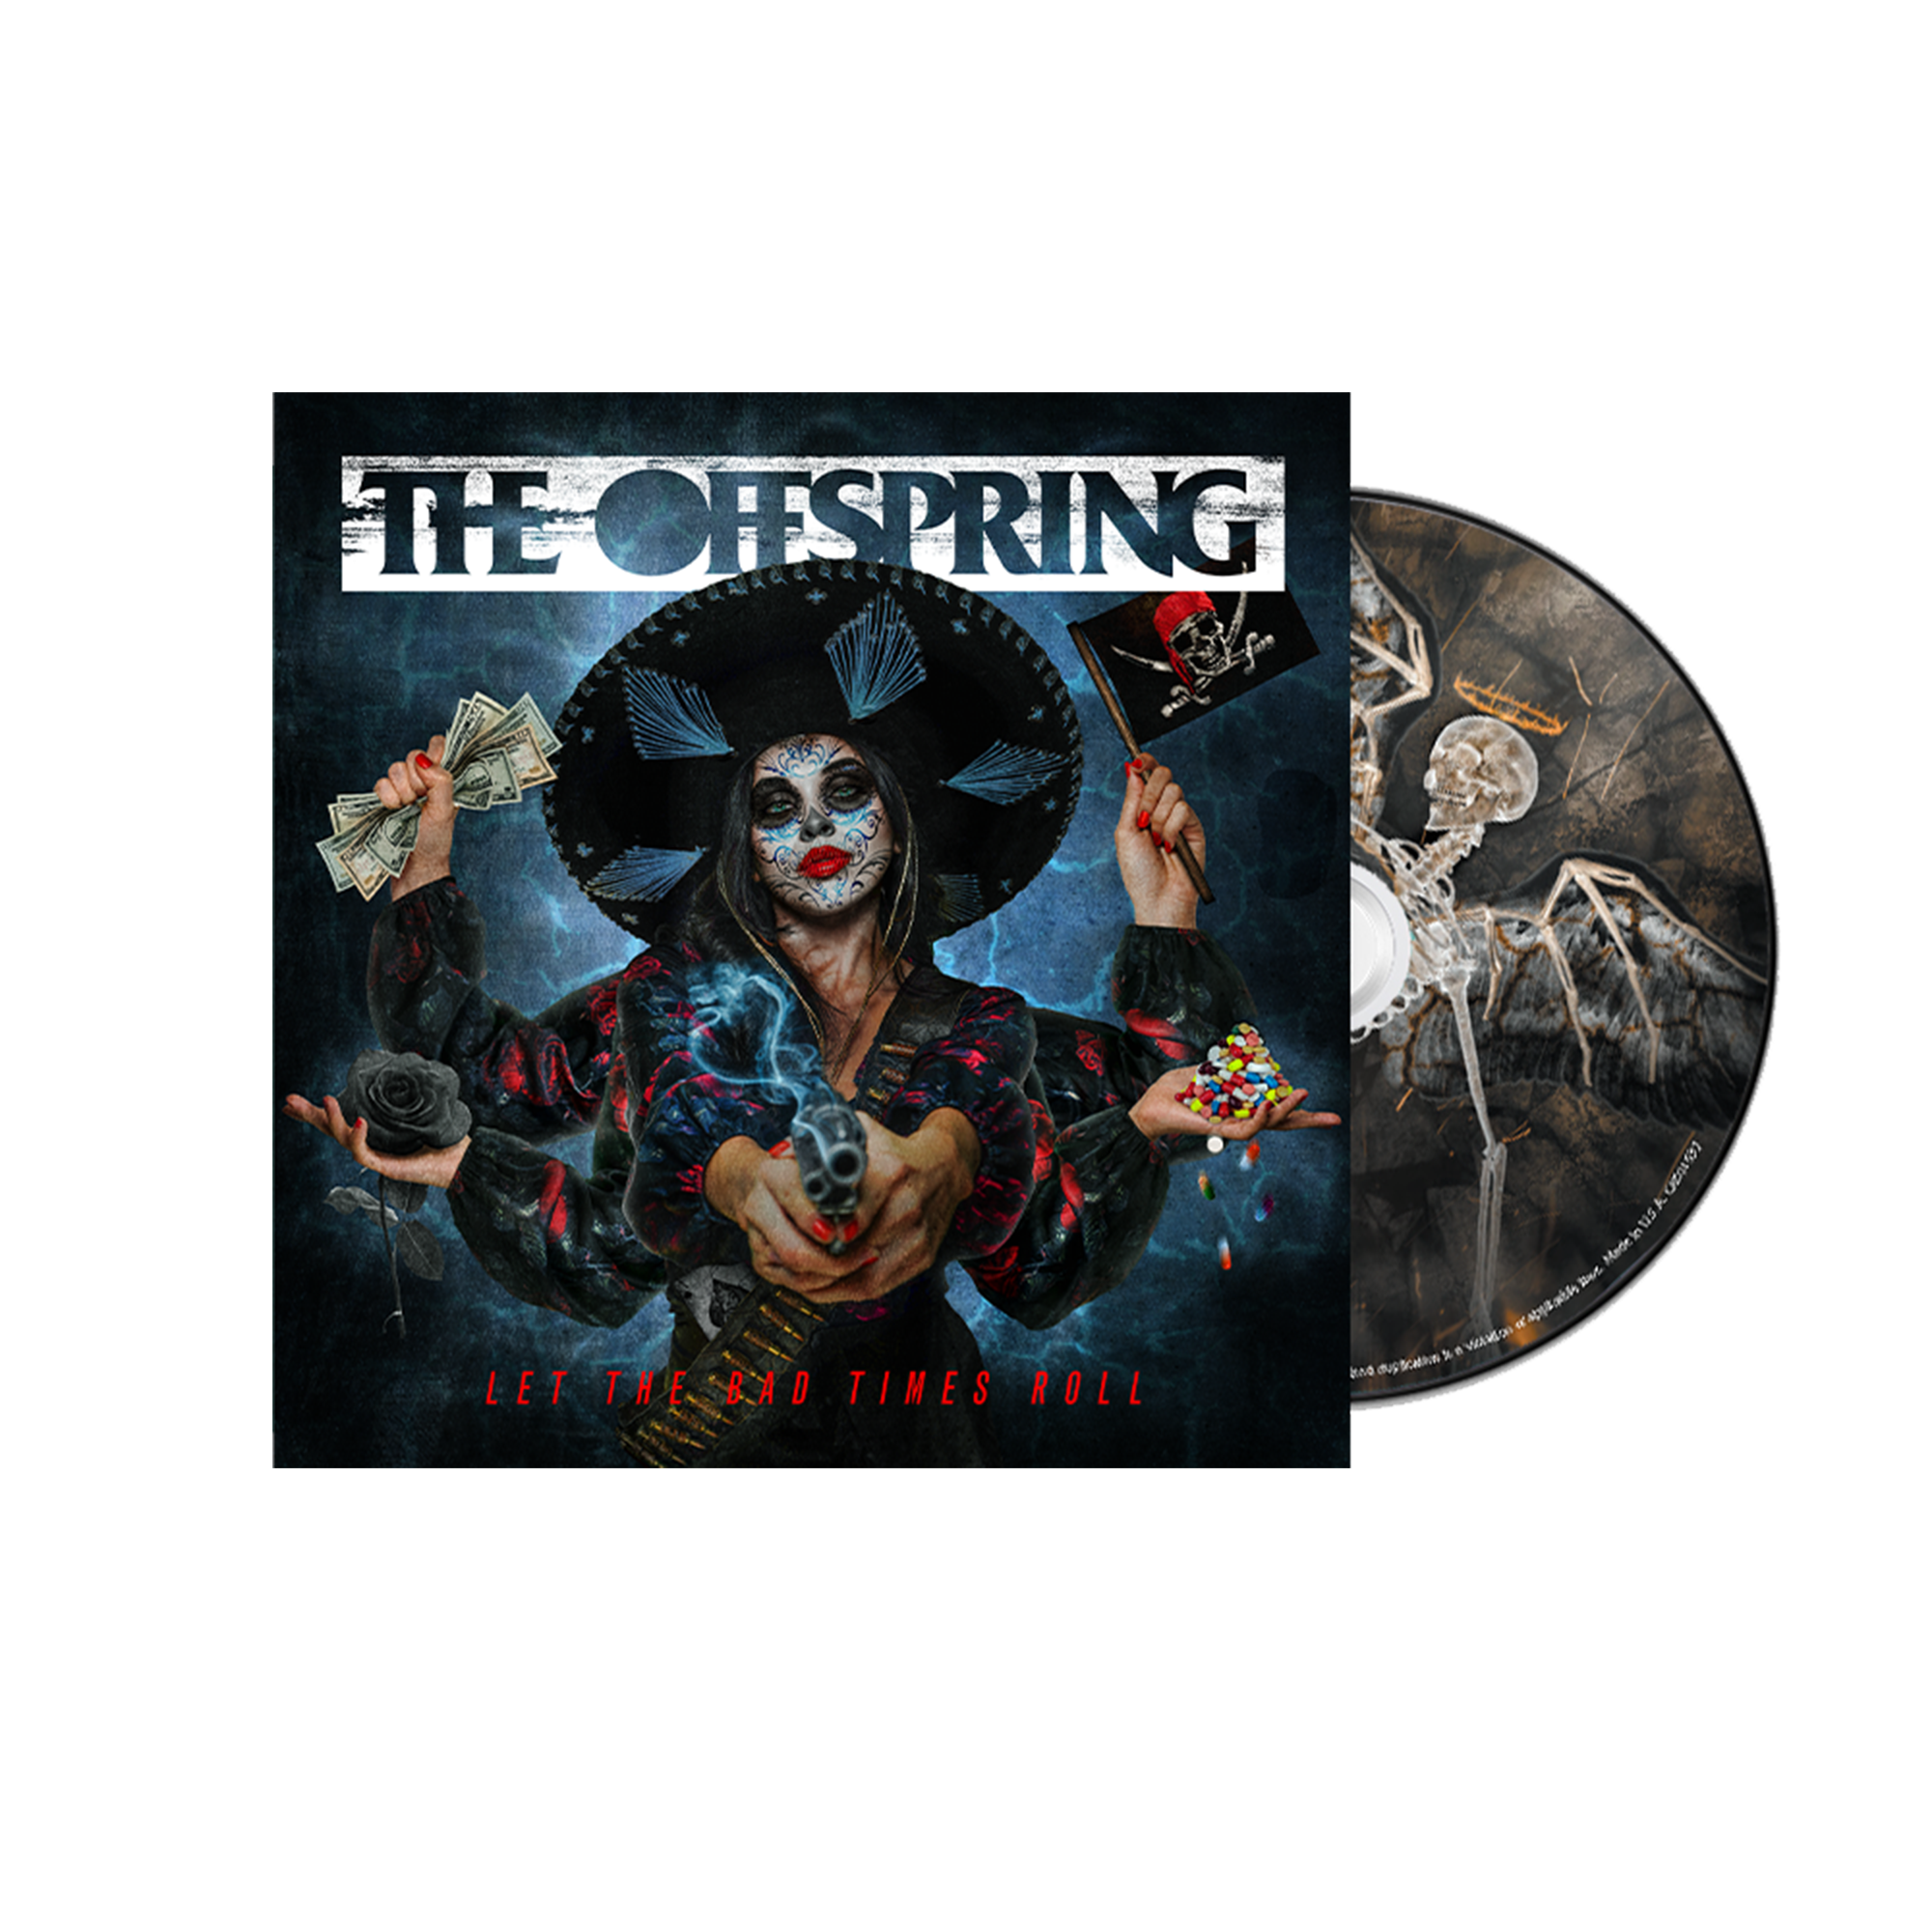 The Offspring	Let The Bad Times Roll CD Album